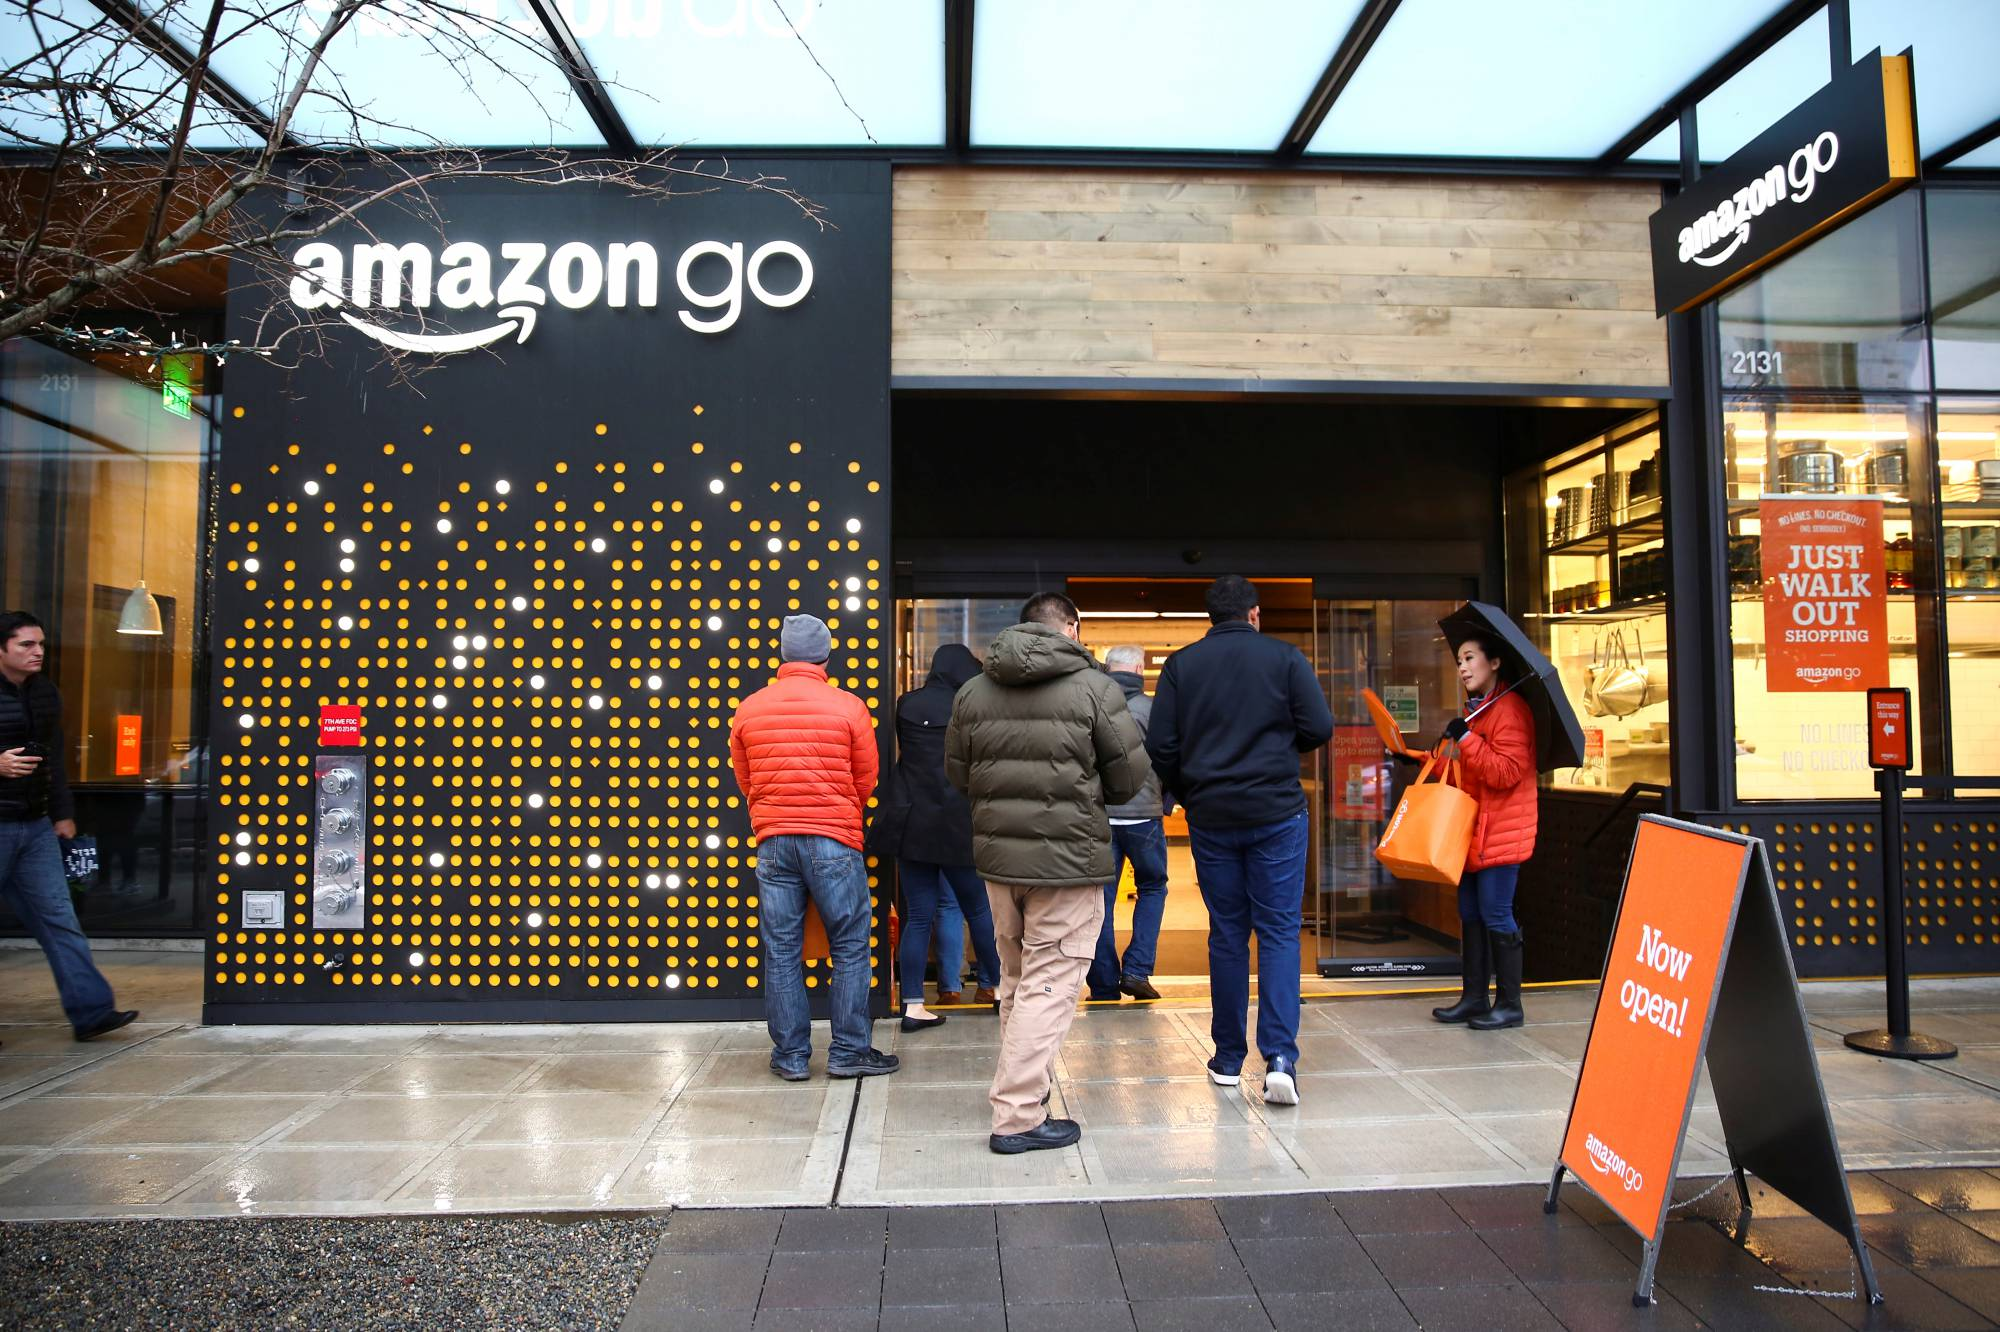 People are offered free reusable bags as they enter the new Amazon Go store in Seattle